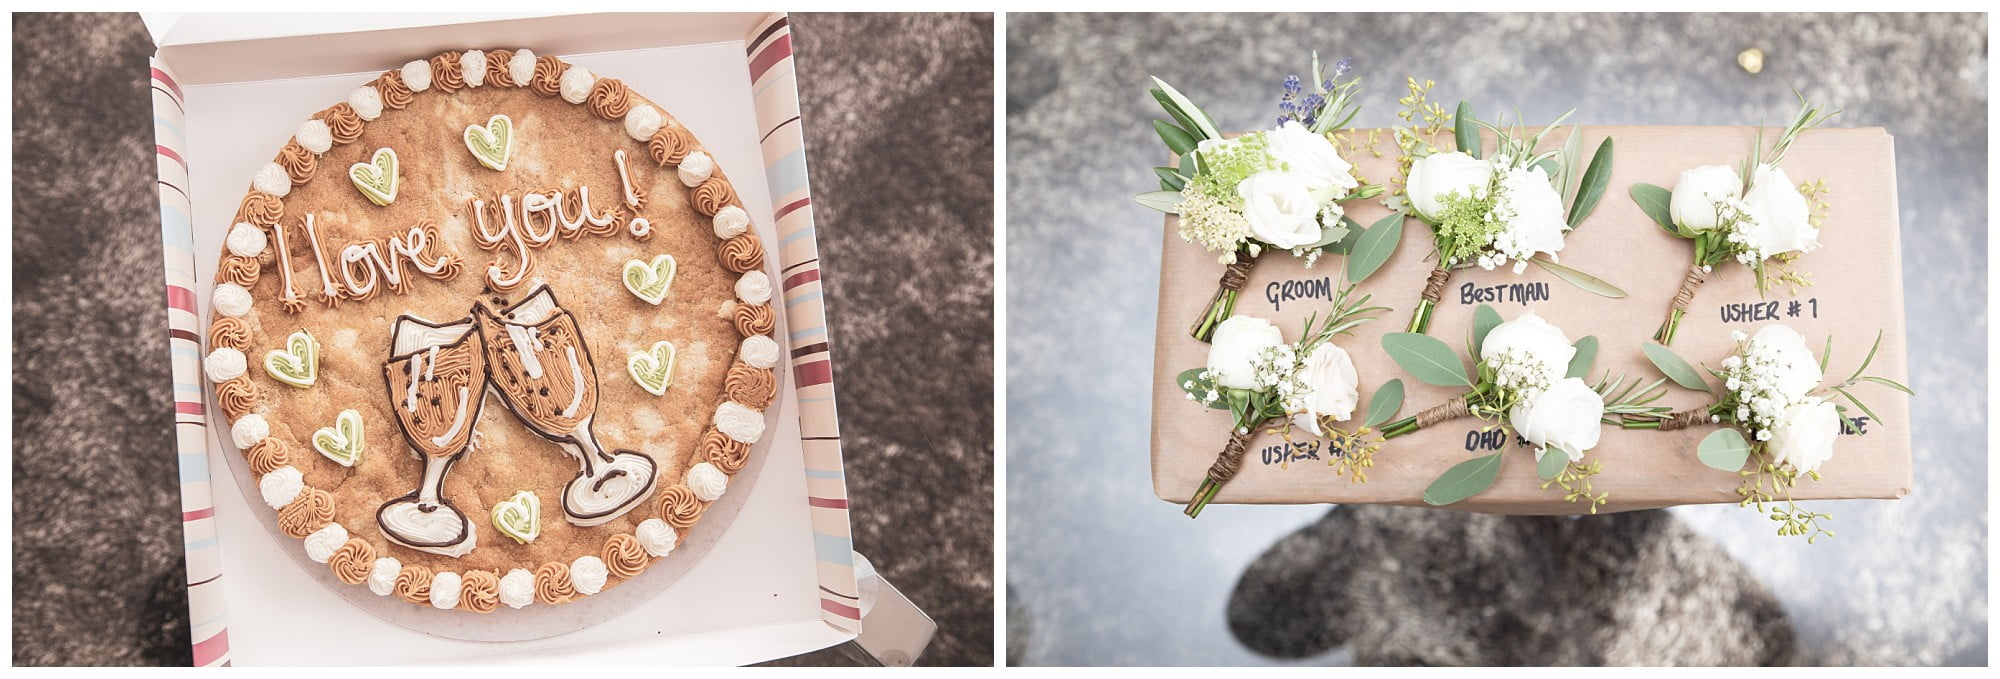 images of the flowers and a cookie saying I love you